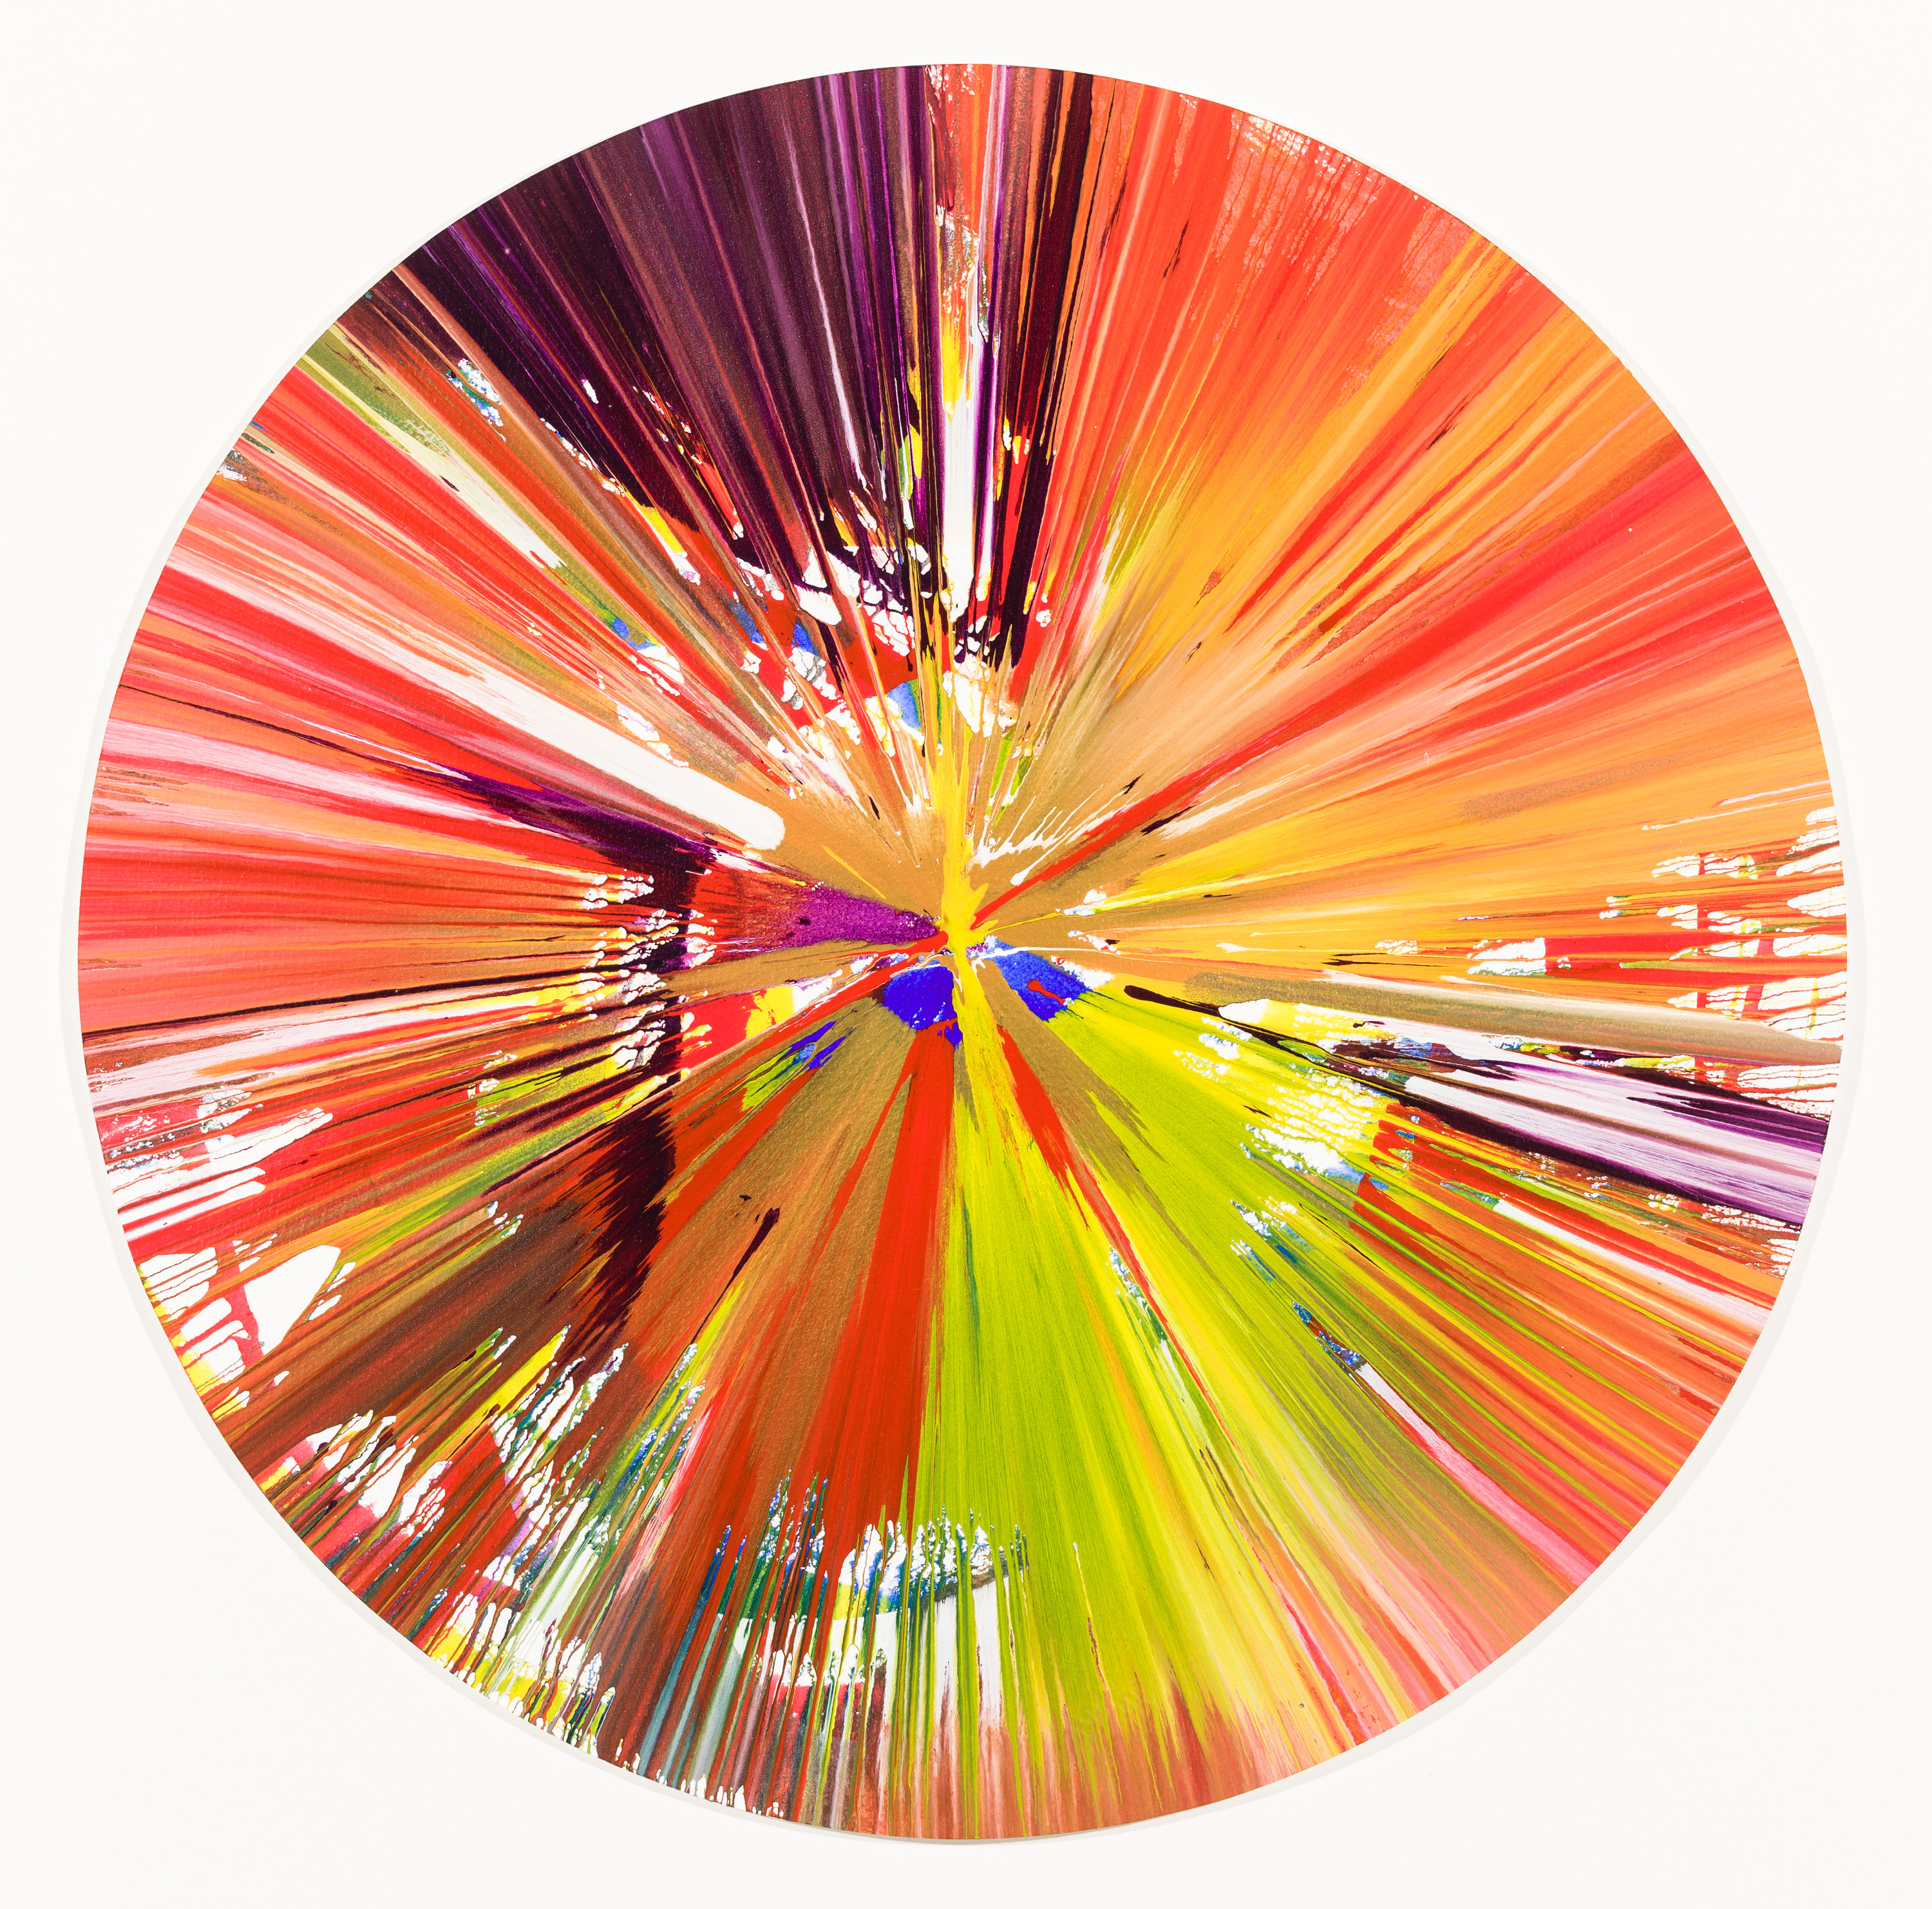 Damien Hirst, Spin Painting